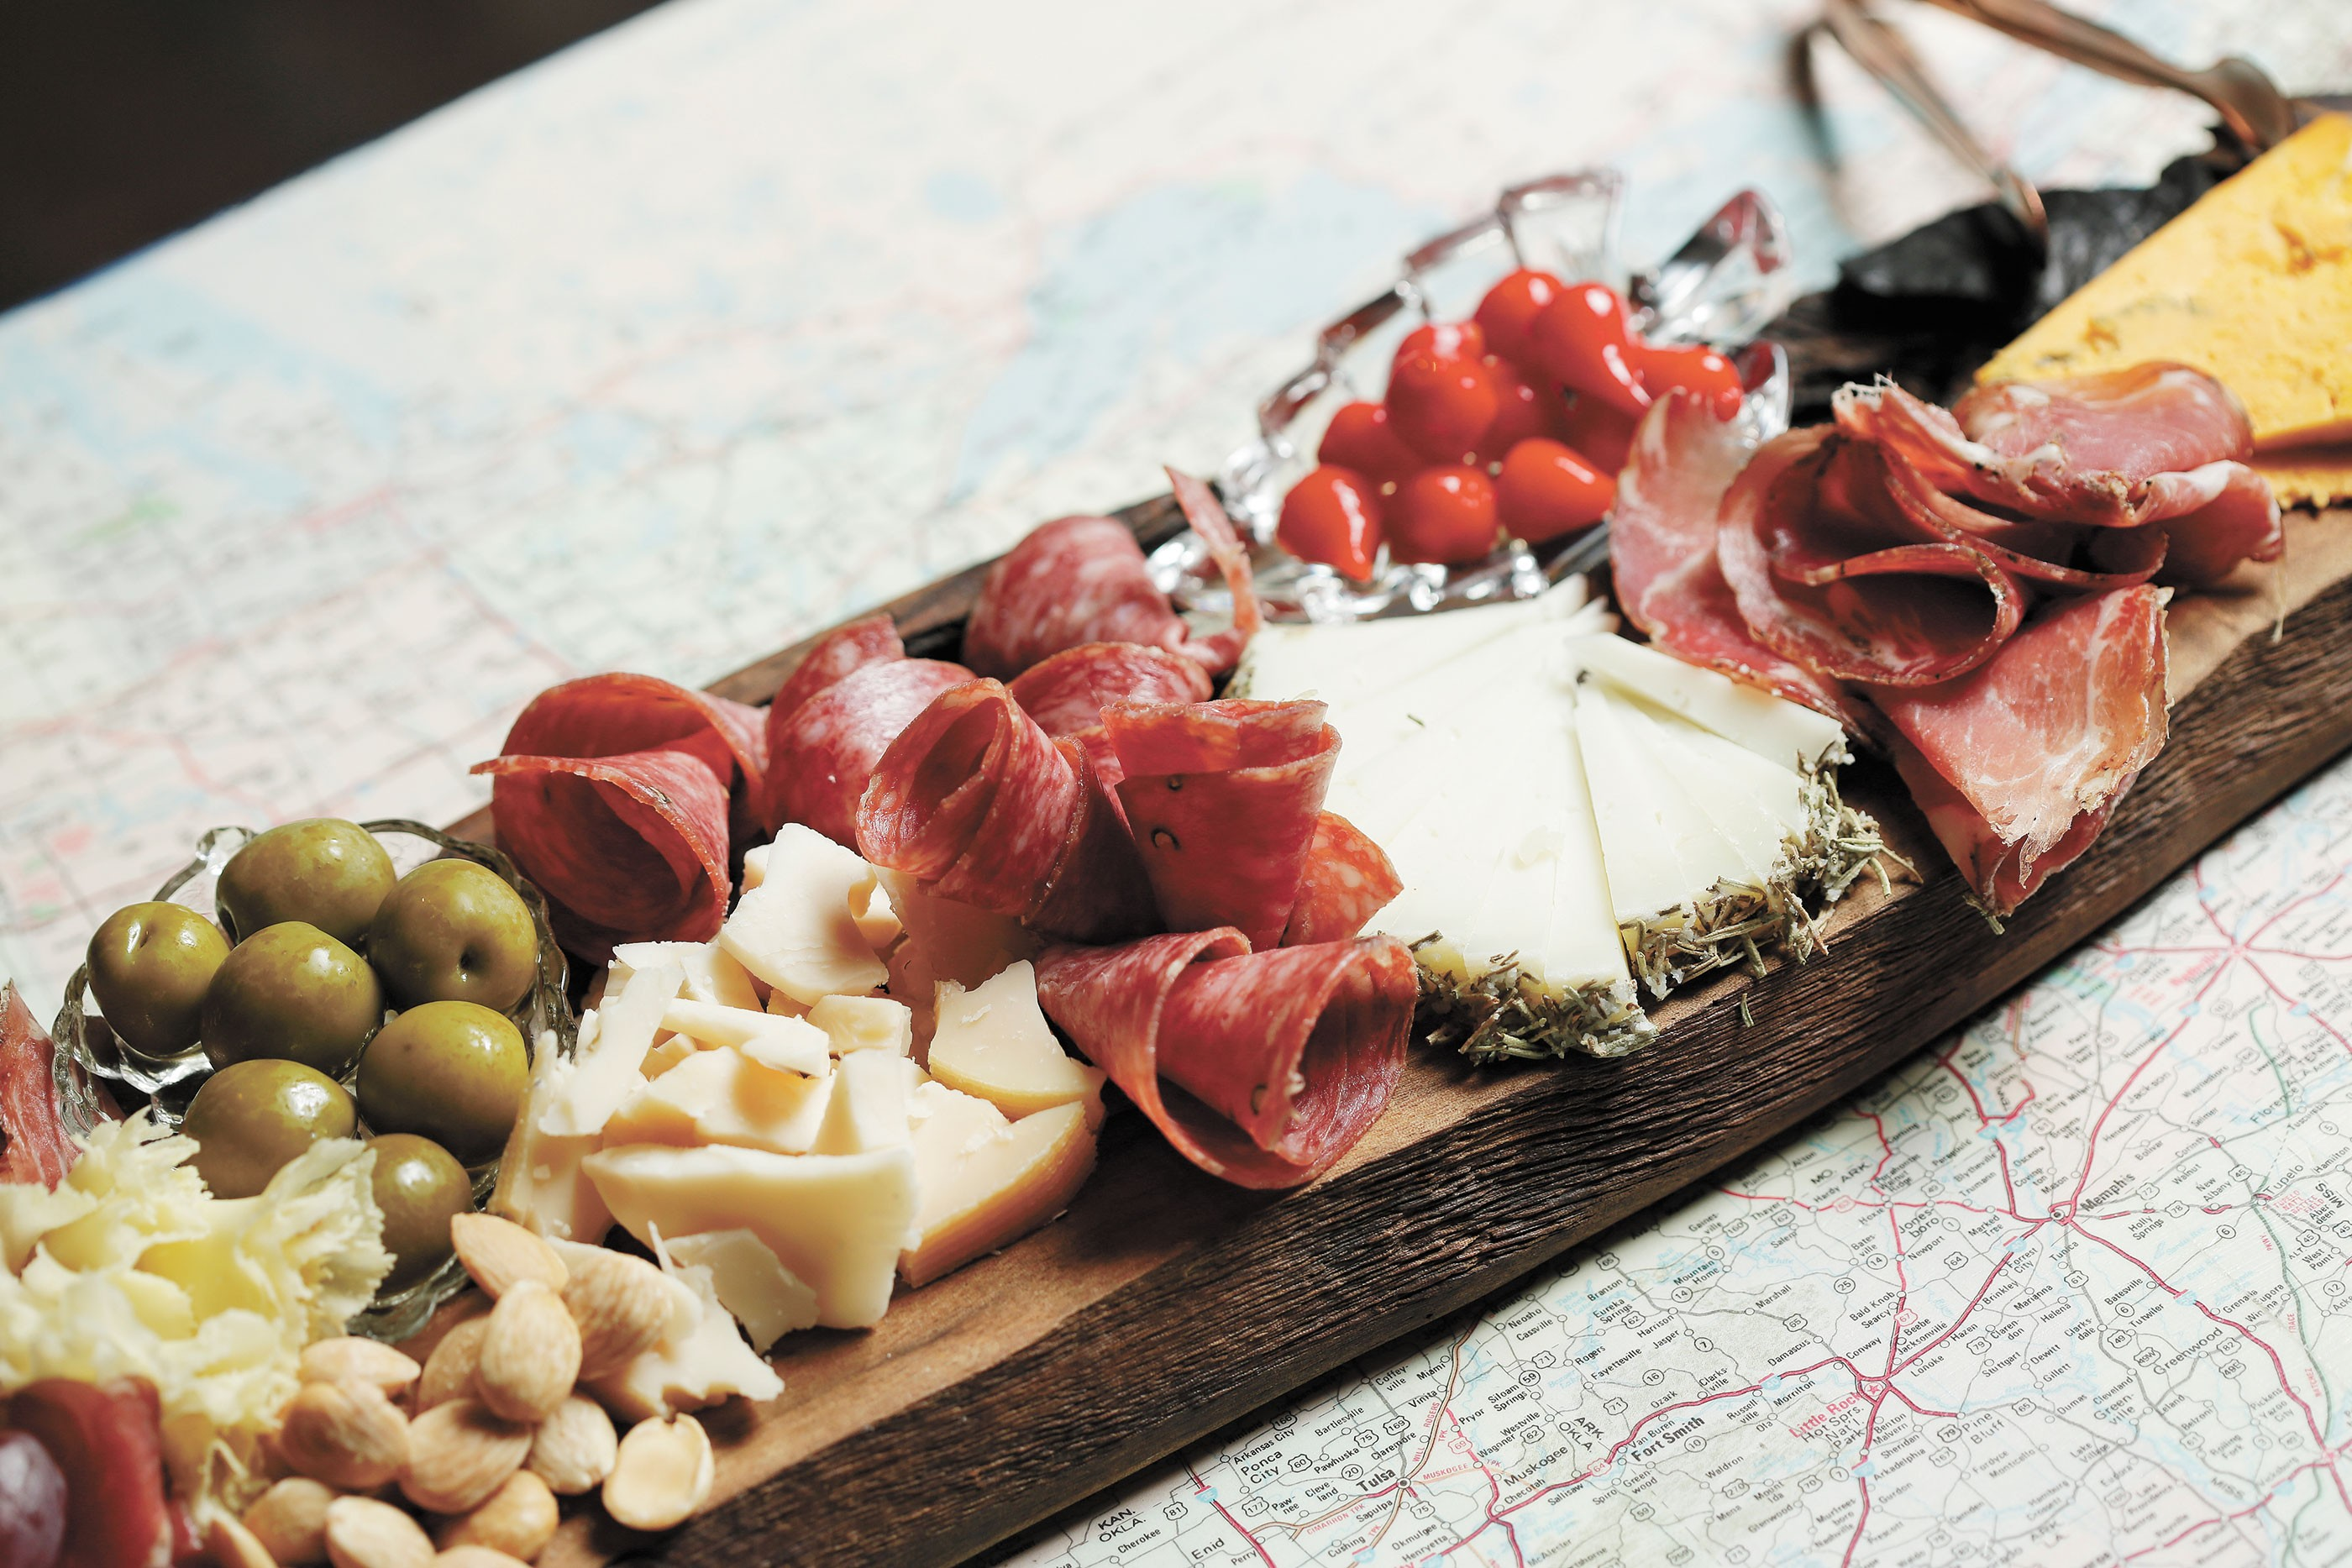 A cheese and charcuterie board at Wanderlust Delicato. - YOUNG KWAK PHOTO